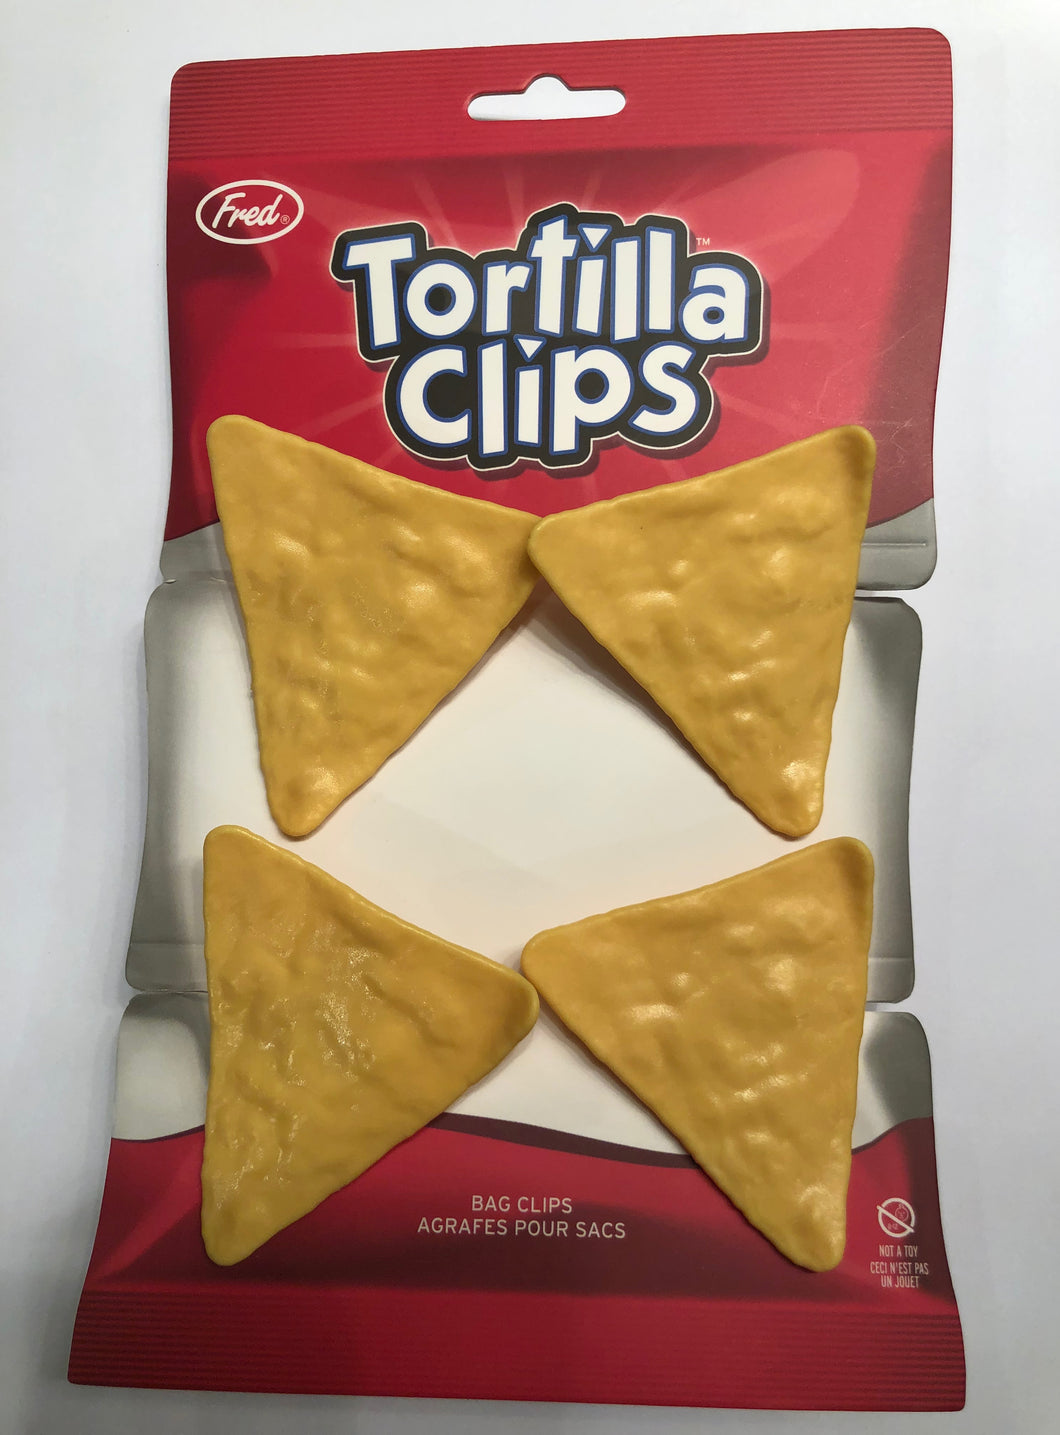 Bag Clips: Tortilla Clips by Fred